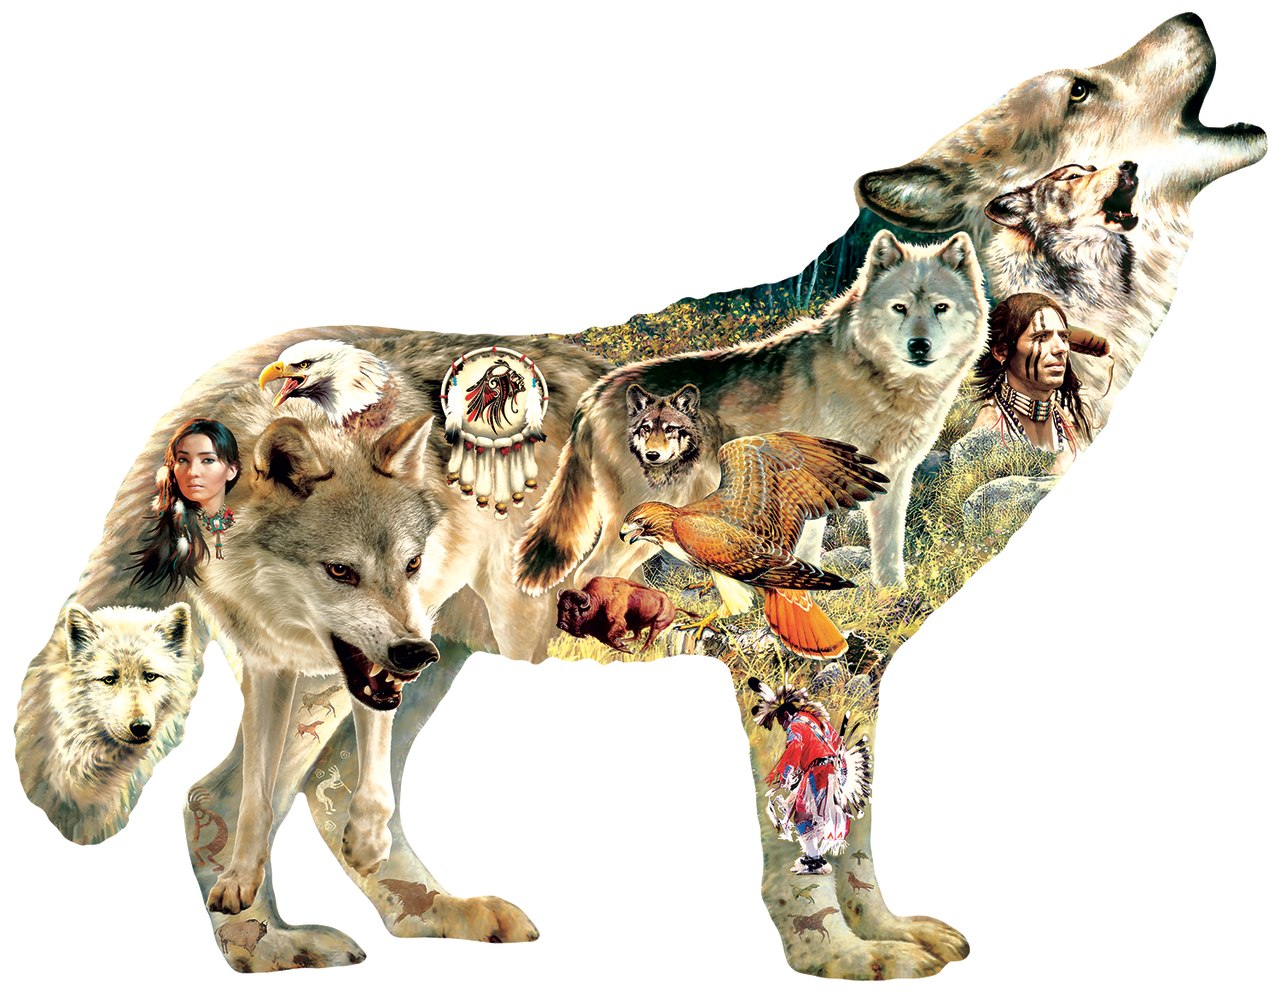 Native American Wolf - 750pc Shaped Jigsaw Puzzle by Sunsout  			  					NEW